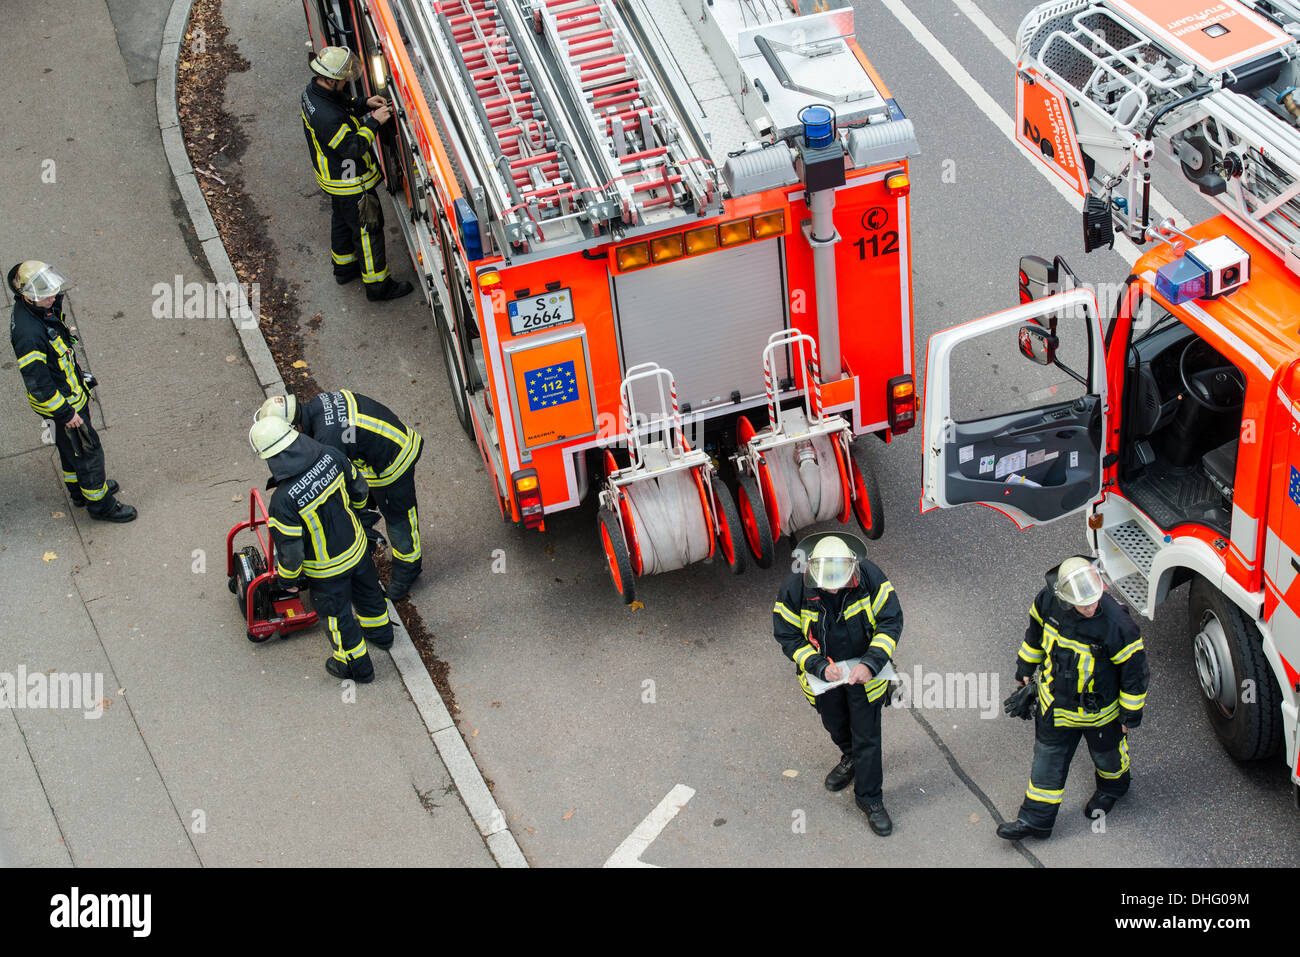 STUTTGART, GERMANY – NOVEMBER 9, 2013: The Stuttgart fire brigade is fighting a smaller fire that started after lunch time. - Stock Image